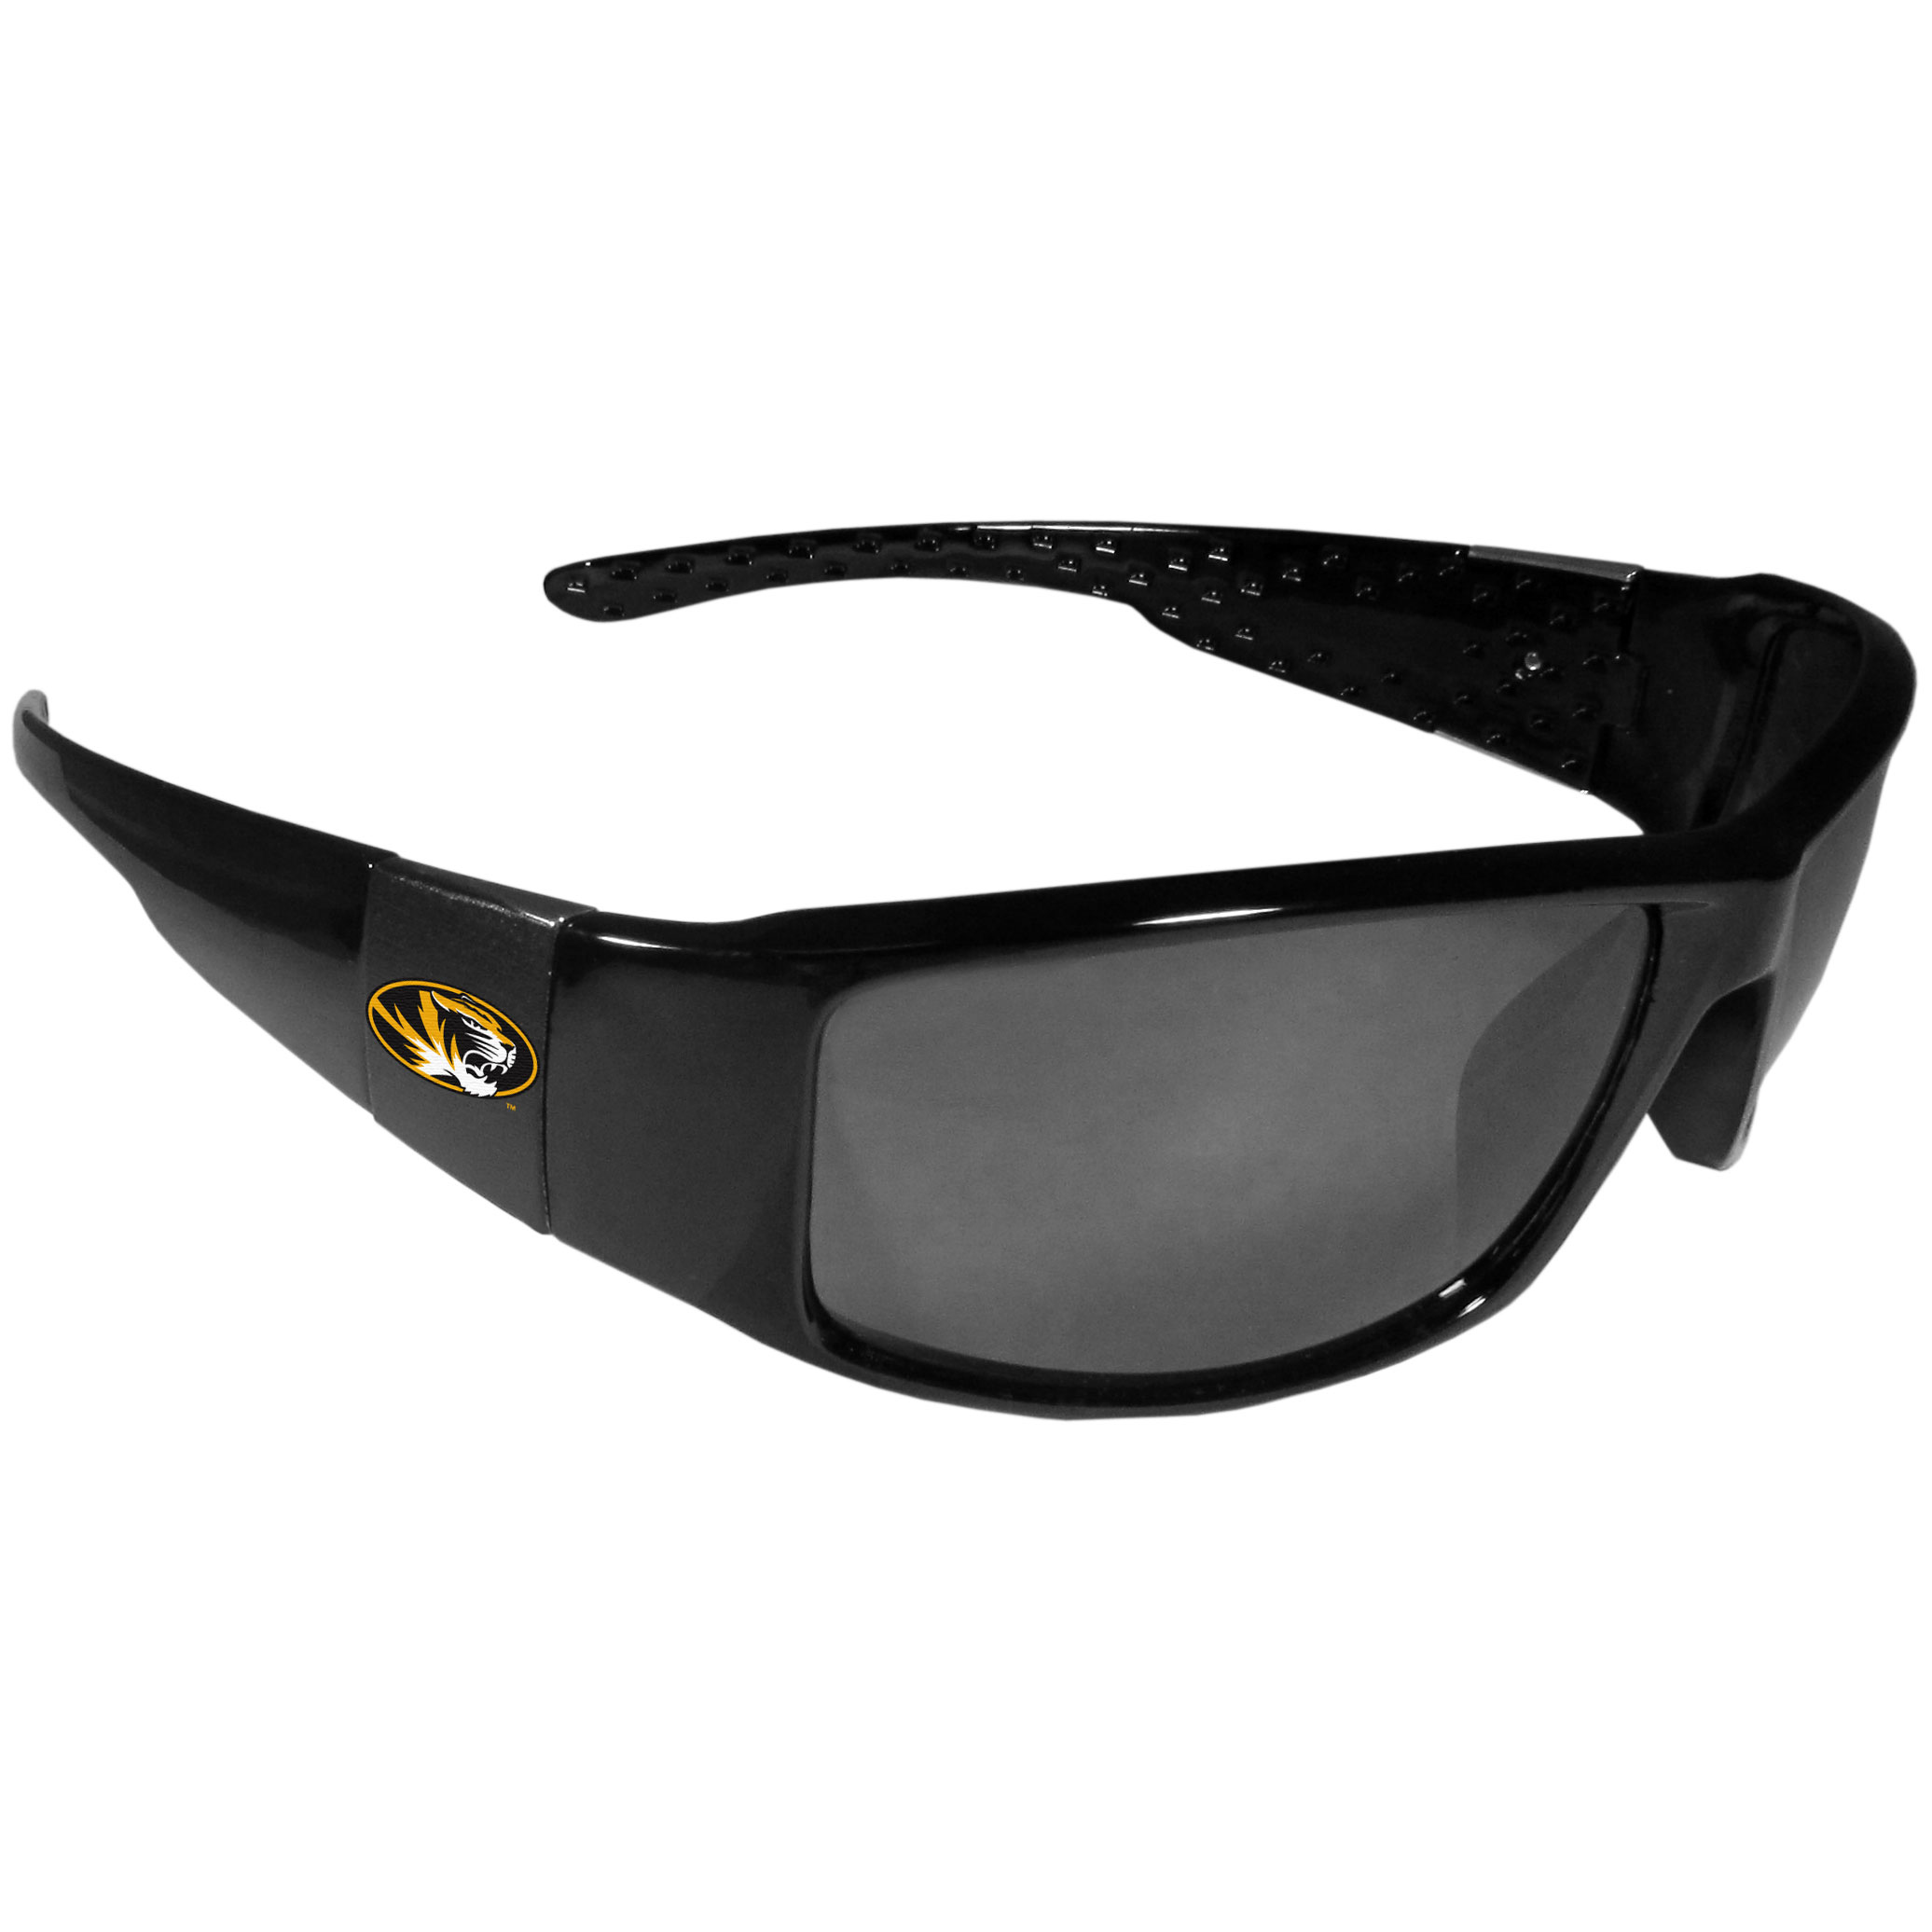 Missouri Tigers Black Wrap Sunglasses - These designer inspired frames have a sleek look in all black with  Missouri Tigers shields on each arm with a printed logo. The shades are perfect for any outdoor activity like; golfing, driving, hiking, fishing or cheering on the team at a tailgating event or at a home game day BBQ with a lens rating of 100% UVA/UVB for maximum UV protection. The high-quality frames are as durable as they are fashionable and with their classic look they are the perfect fan accessory that can be worn everyday for every occasion.